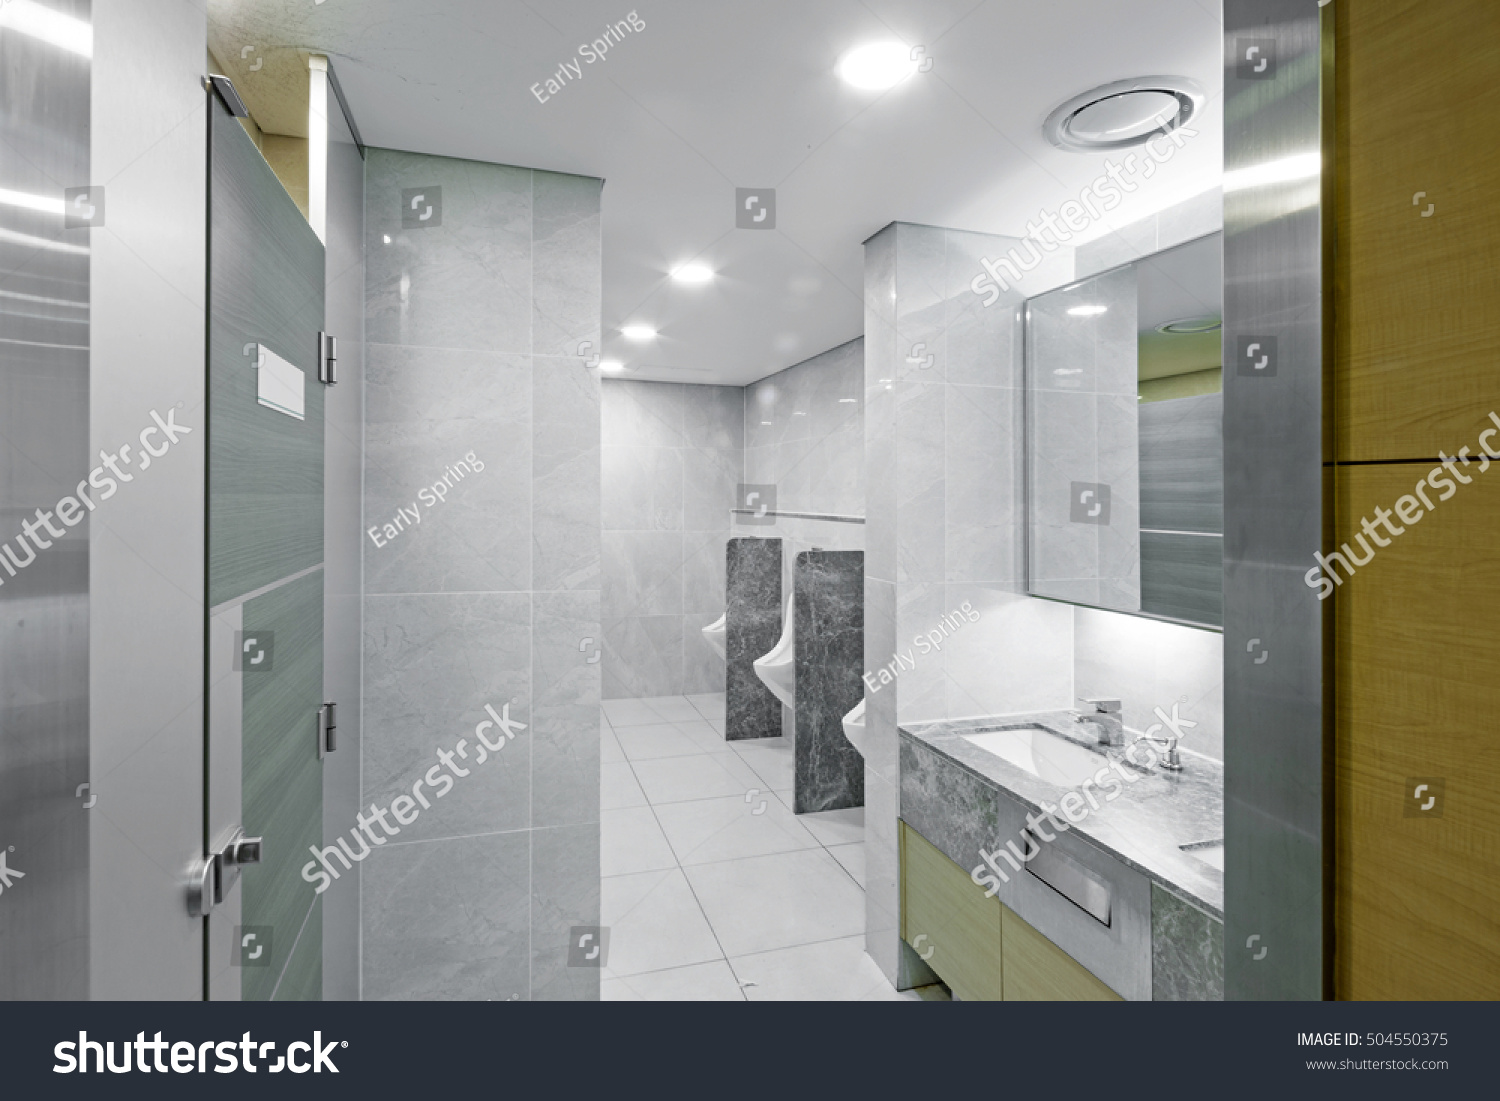 Public Restroompublic Toilet Bathroom Toilet Loo Stock Photo. Stunning Bathroom Loo Ideas   Home Design Ideas  Renovations